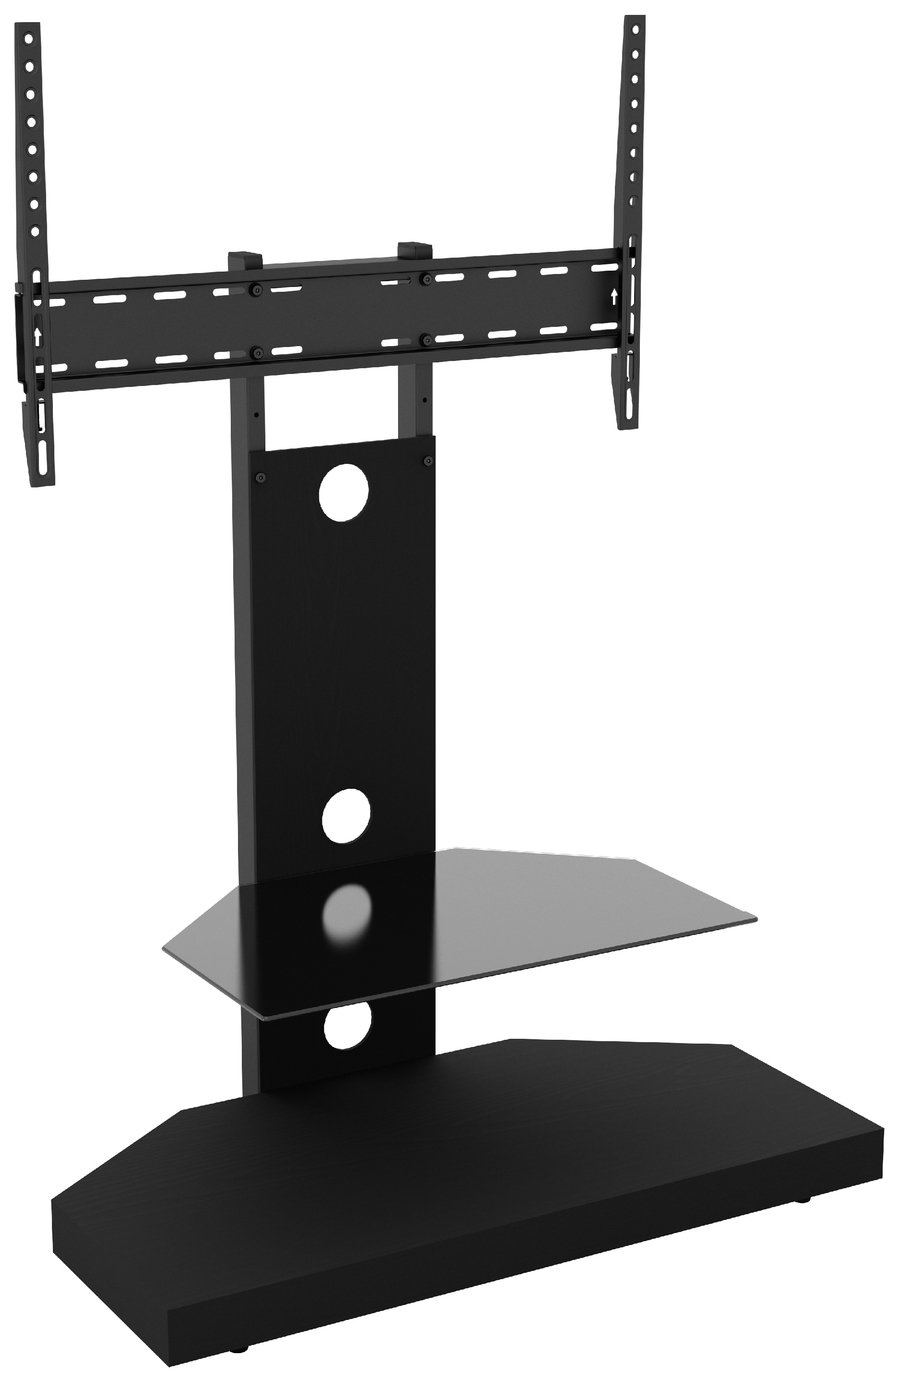 AVF Wood Effect Mount Up To 60 Inch TV Stand - Black